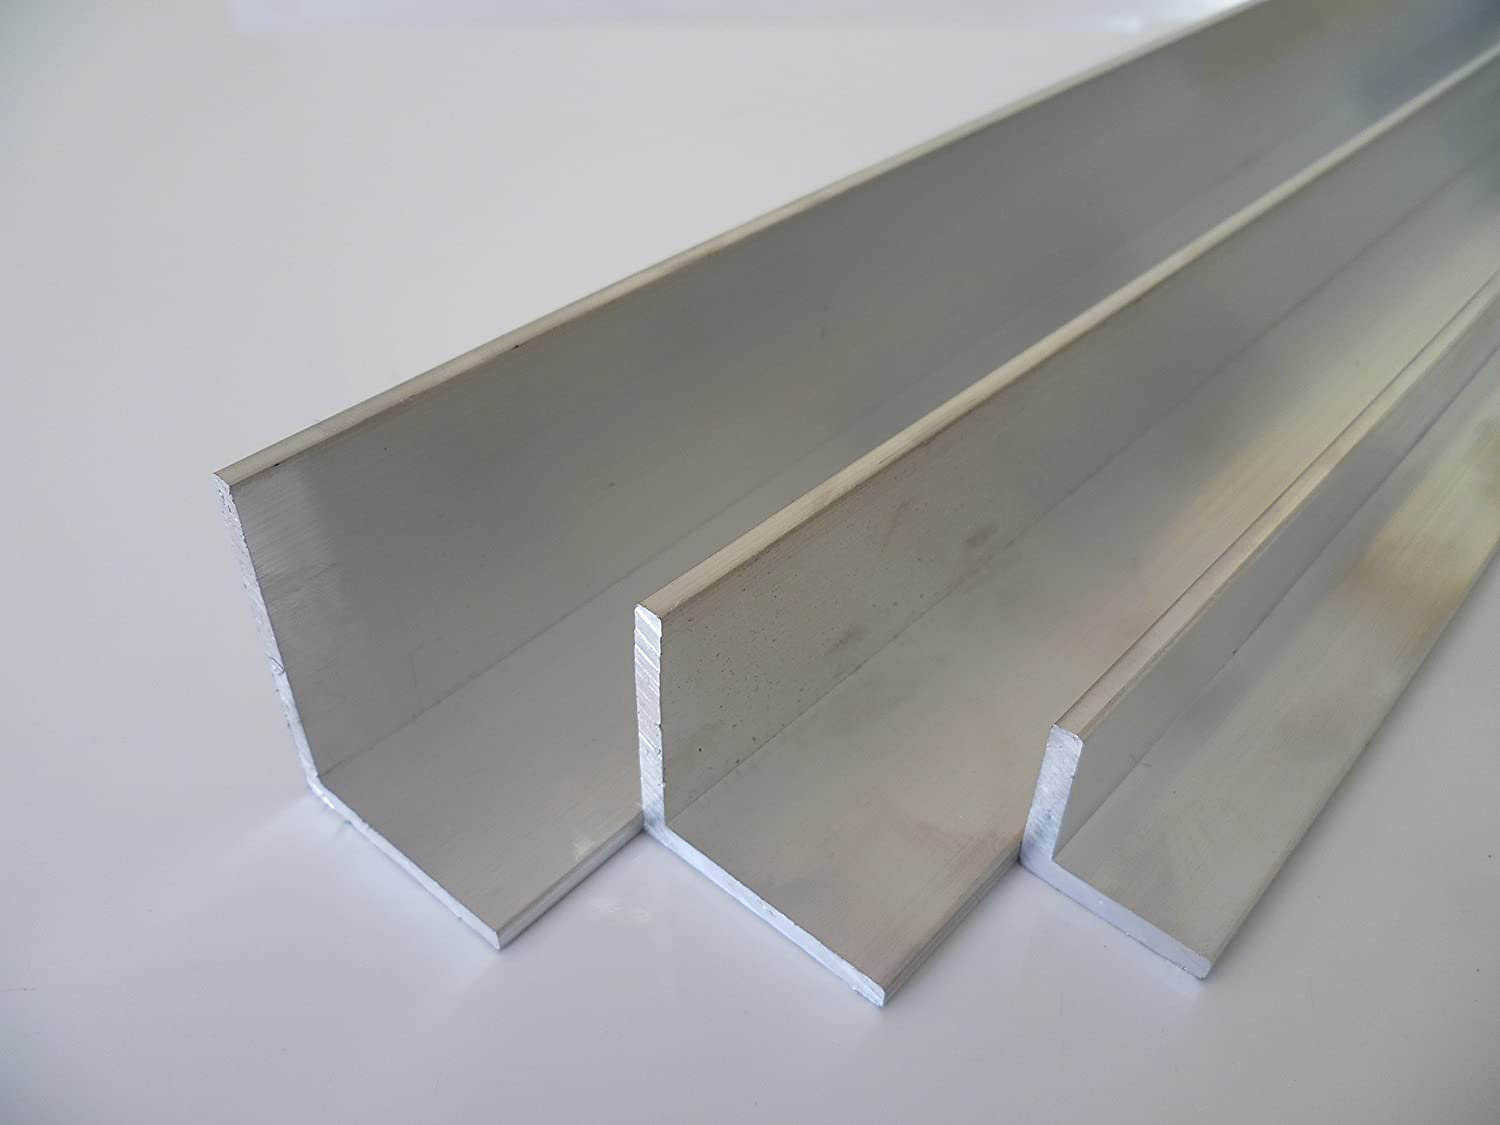 B & D Metal Aluminium Angle 60  x 60  x 5  mm Traditional gsi0, 5  ° F22  Schweissbar Suitable for Anodising Length Approx. 0.5  m (500  + 0/3) 5 °F22 Schweissbar Suitable for Anodising Length Approx. 0.5 m (500 + 0/3